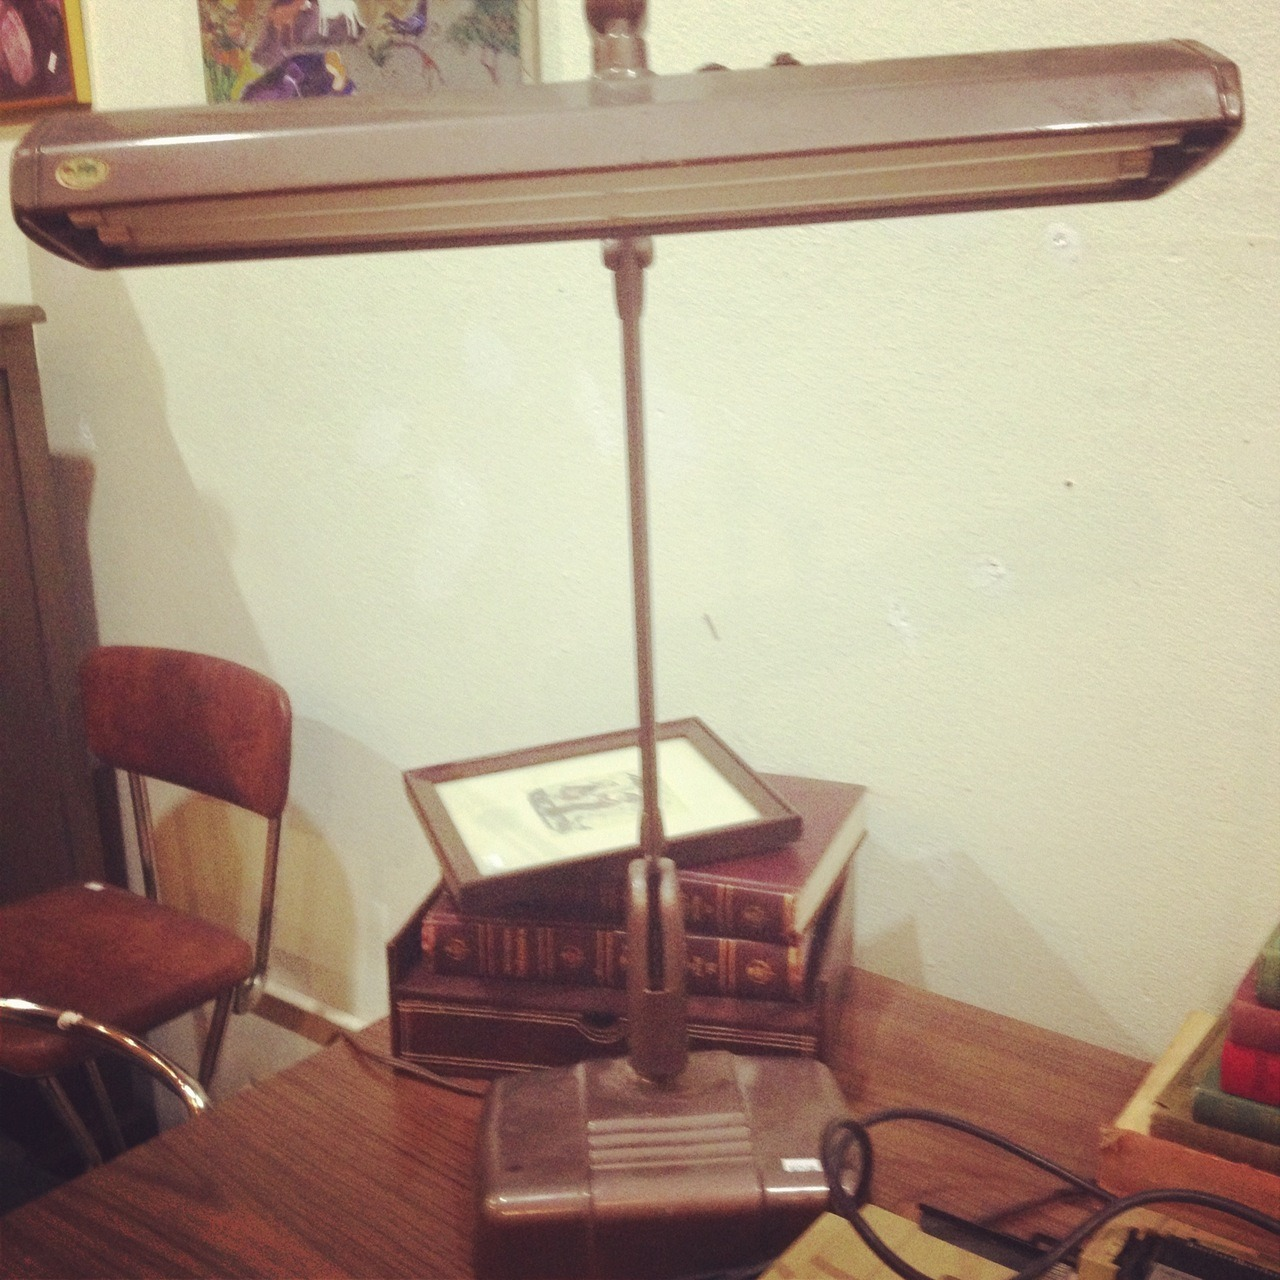 I want this desk lamp. I don't even have a desk, but I want this desk lamp.